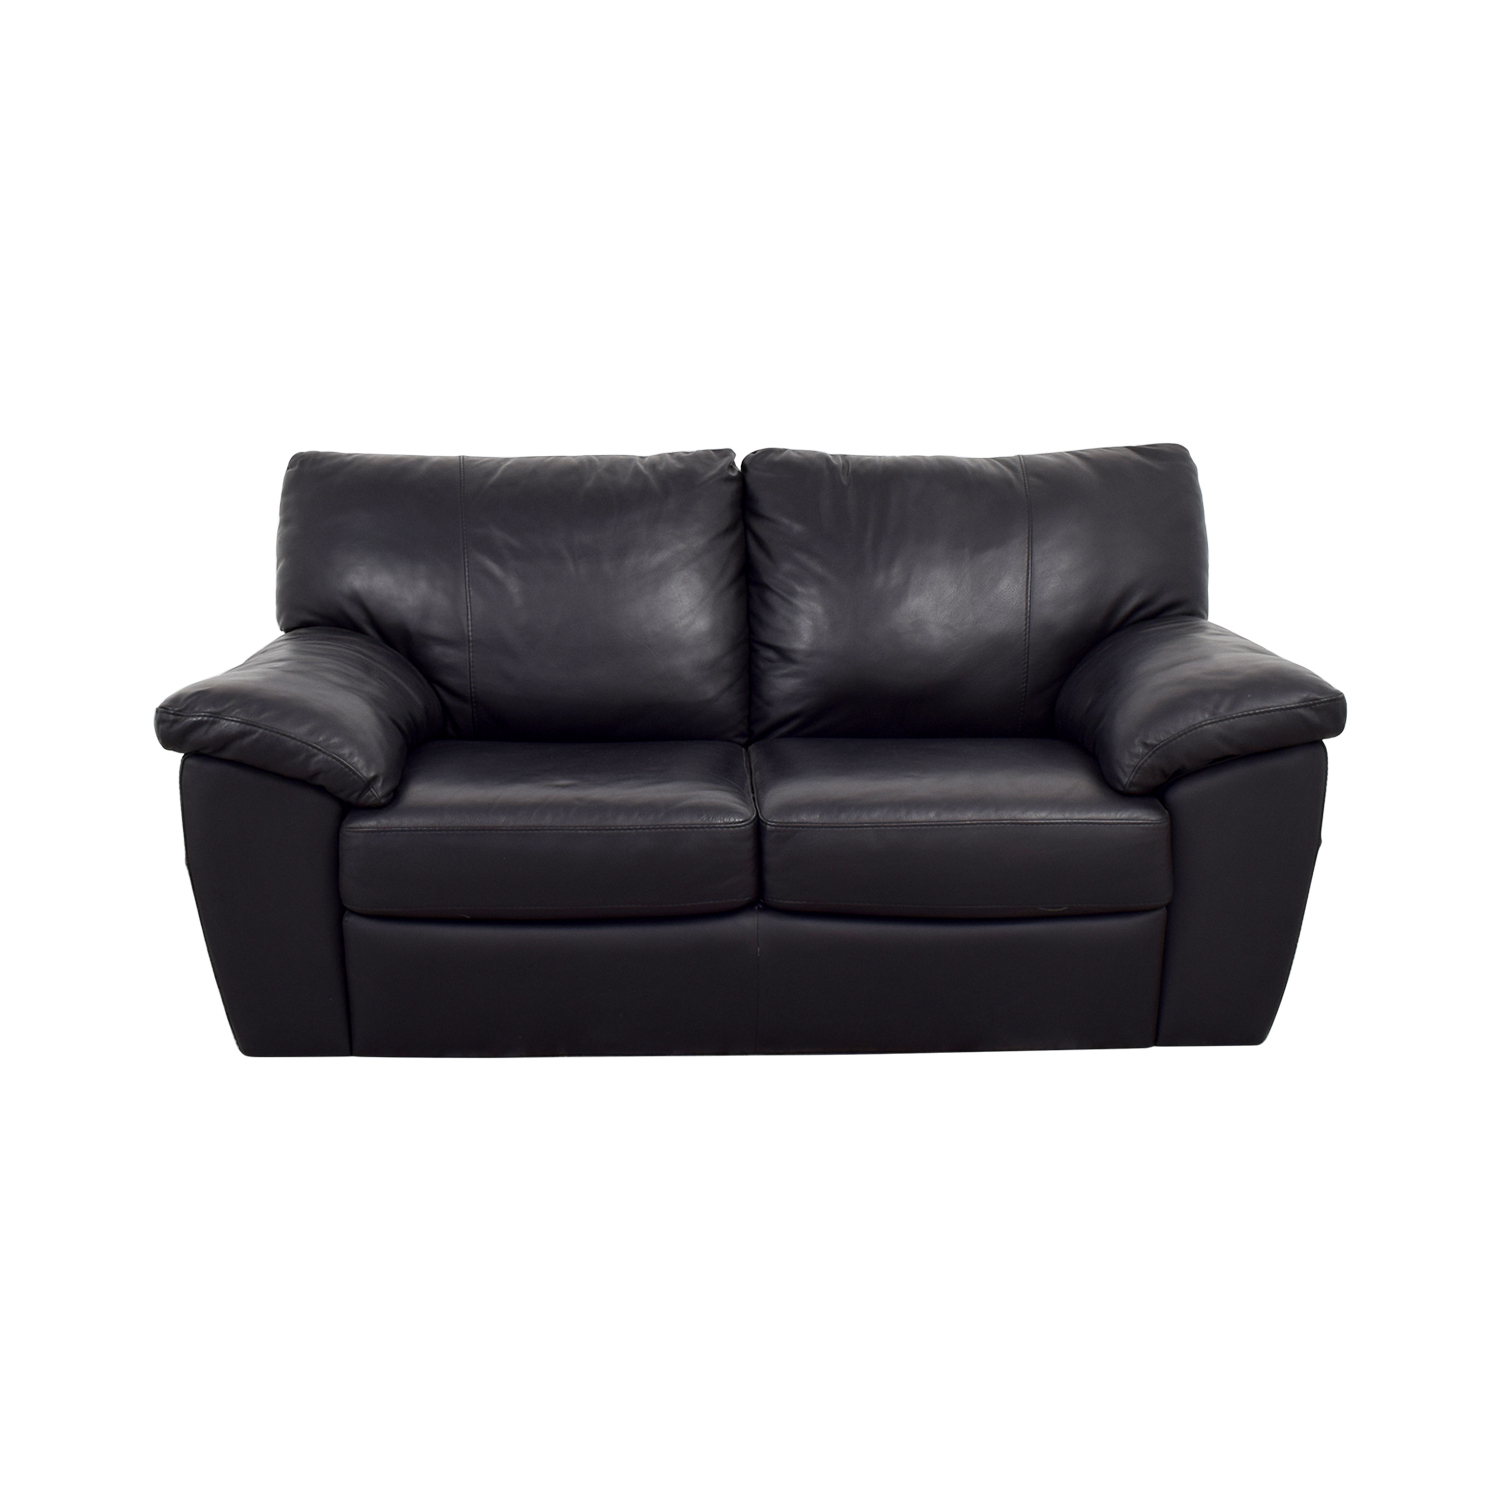 IKEA Black Leather Two-Cushion Couch / Loveseats